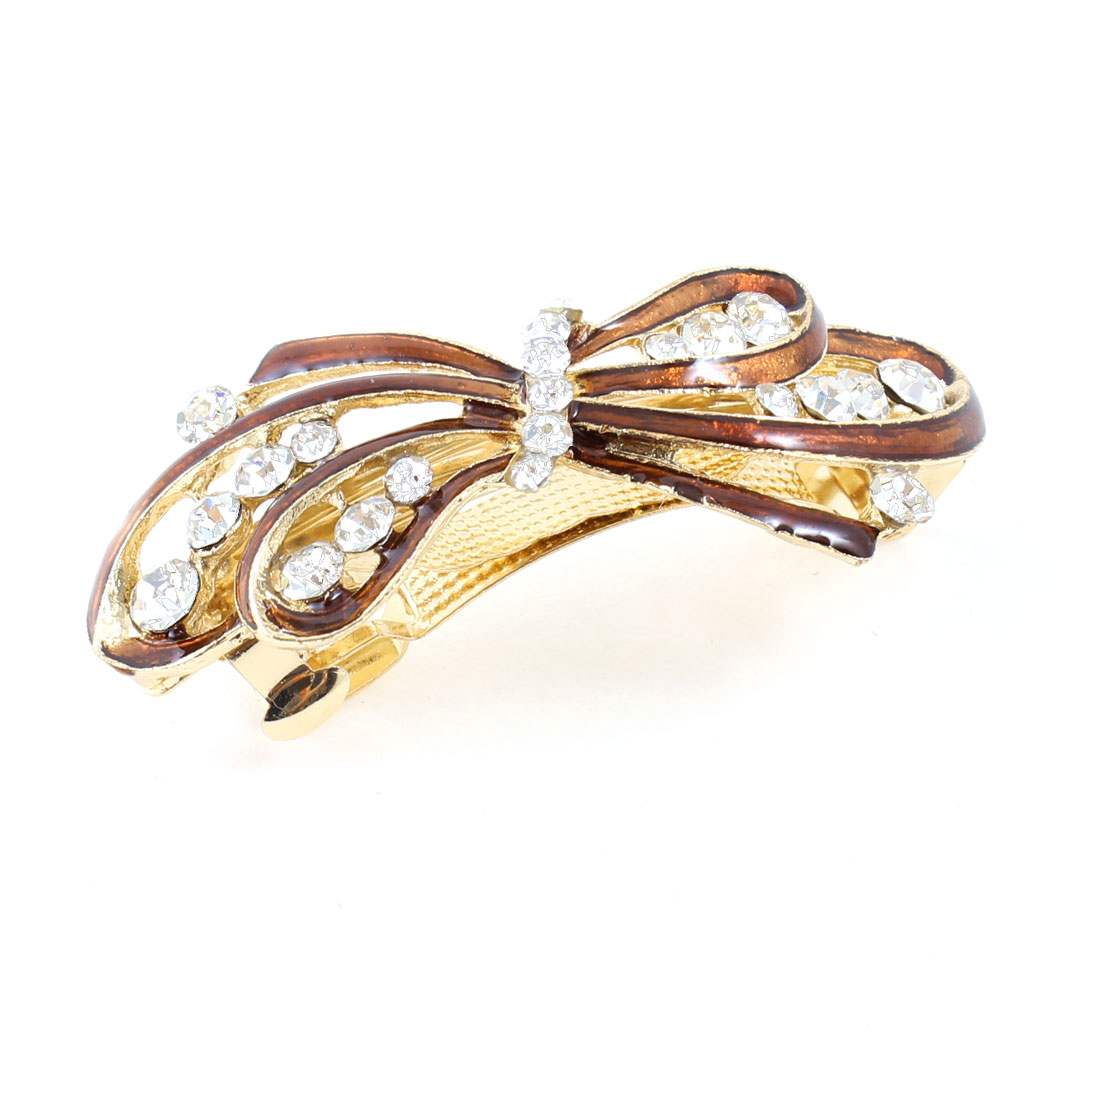 Woman Girl Brown Bowknot Rhinestone Barrette Hairpin Hairclips